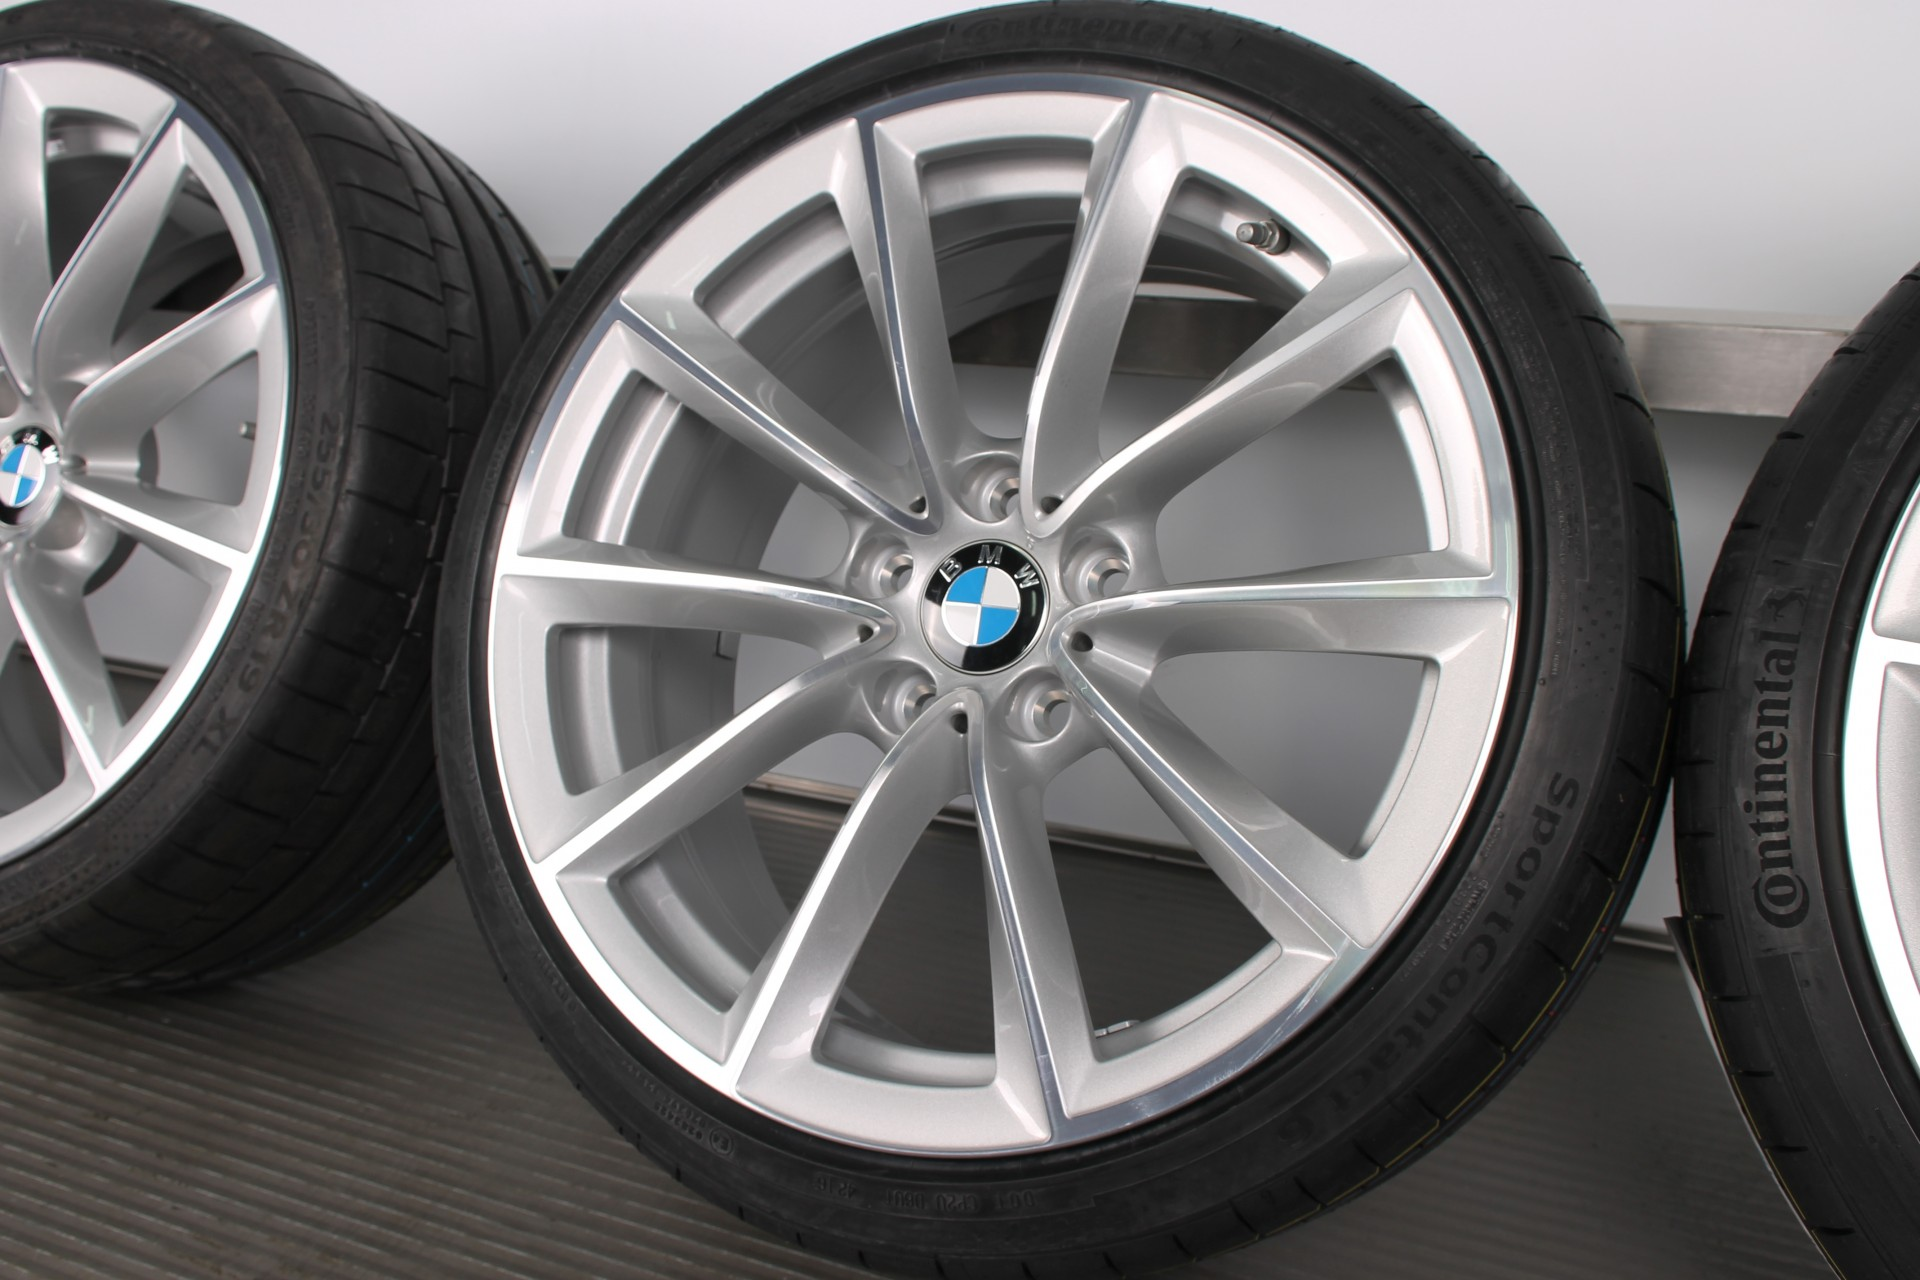 New Bmw Summer Tires Z4 E89 19 Quot Alloy Styling 296 Summer